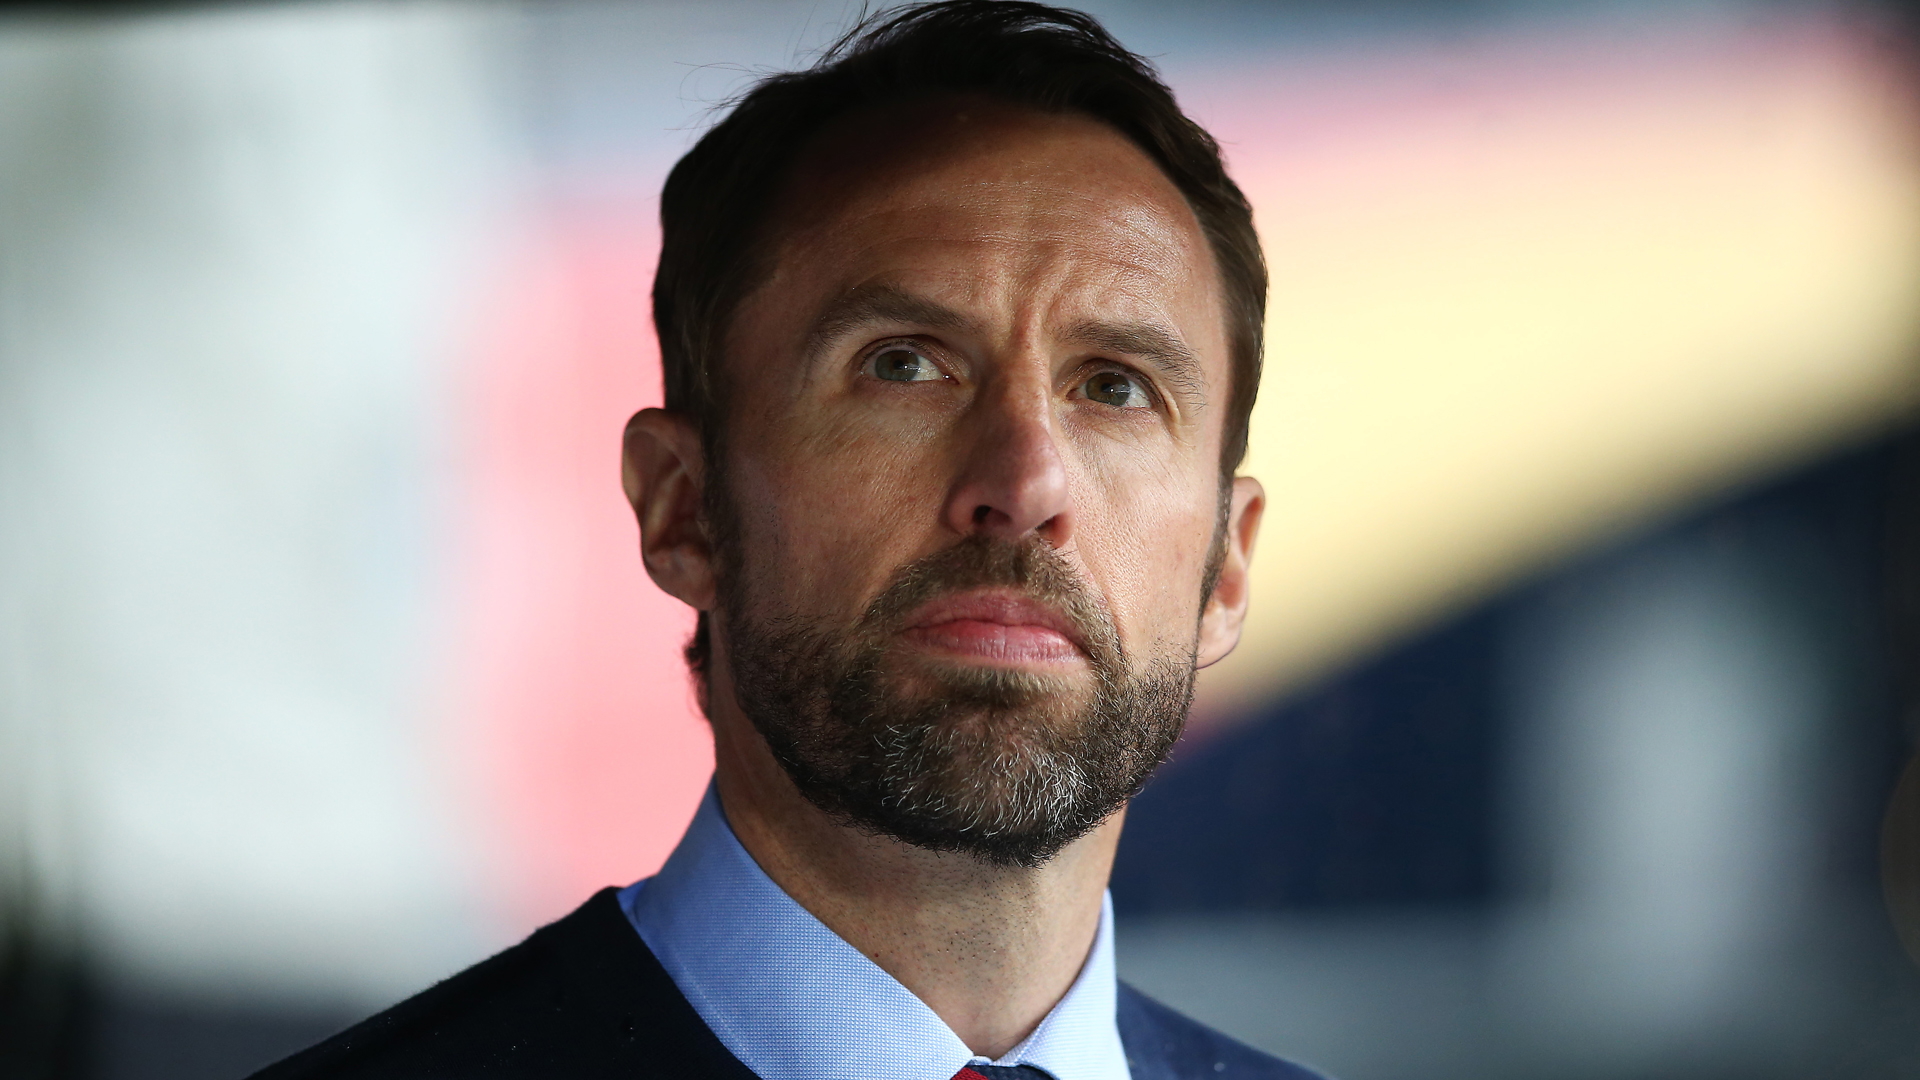 They aren't supporters of England – Southgate slams troublemakers